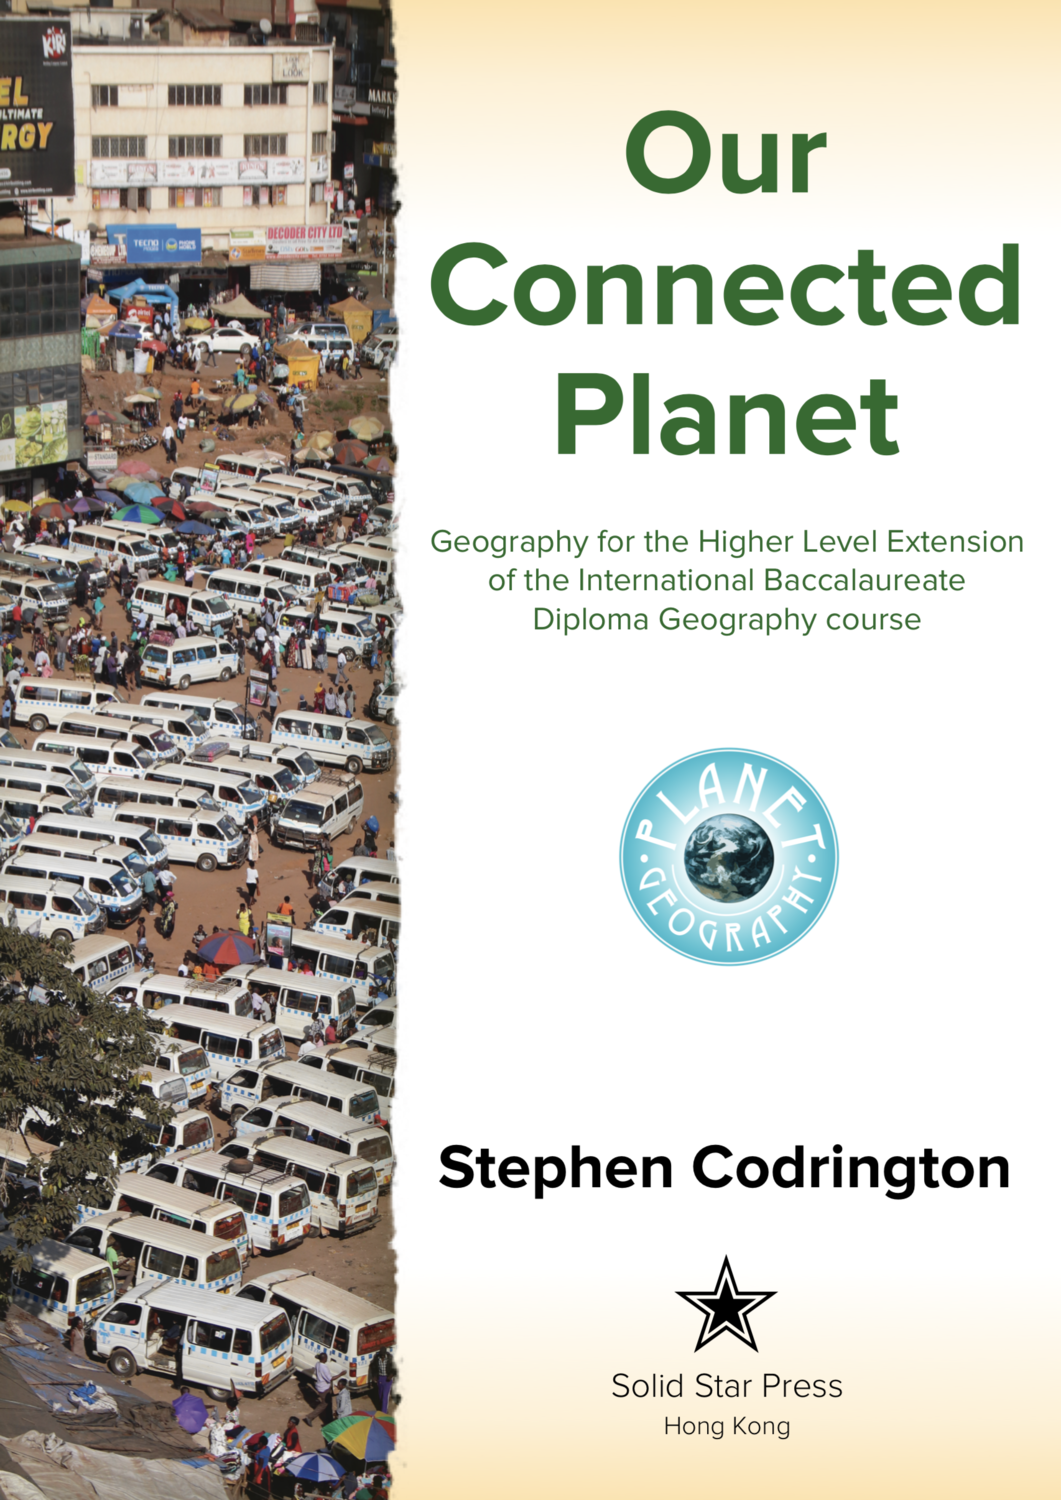 Our Connected Planet